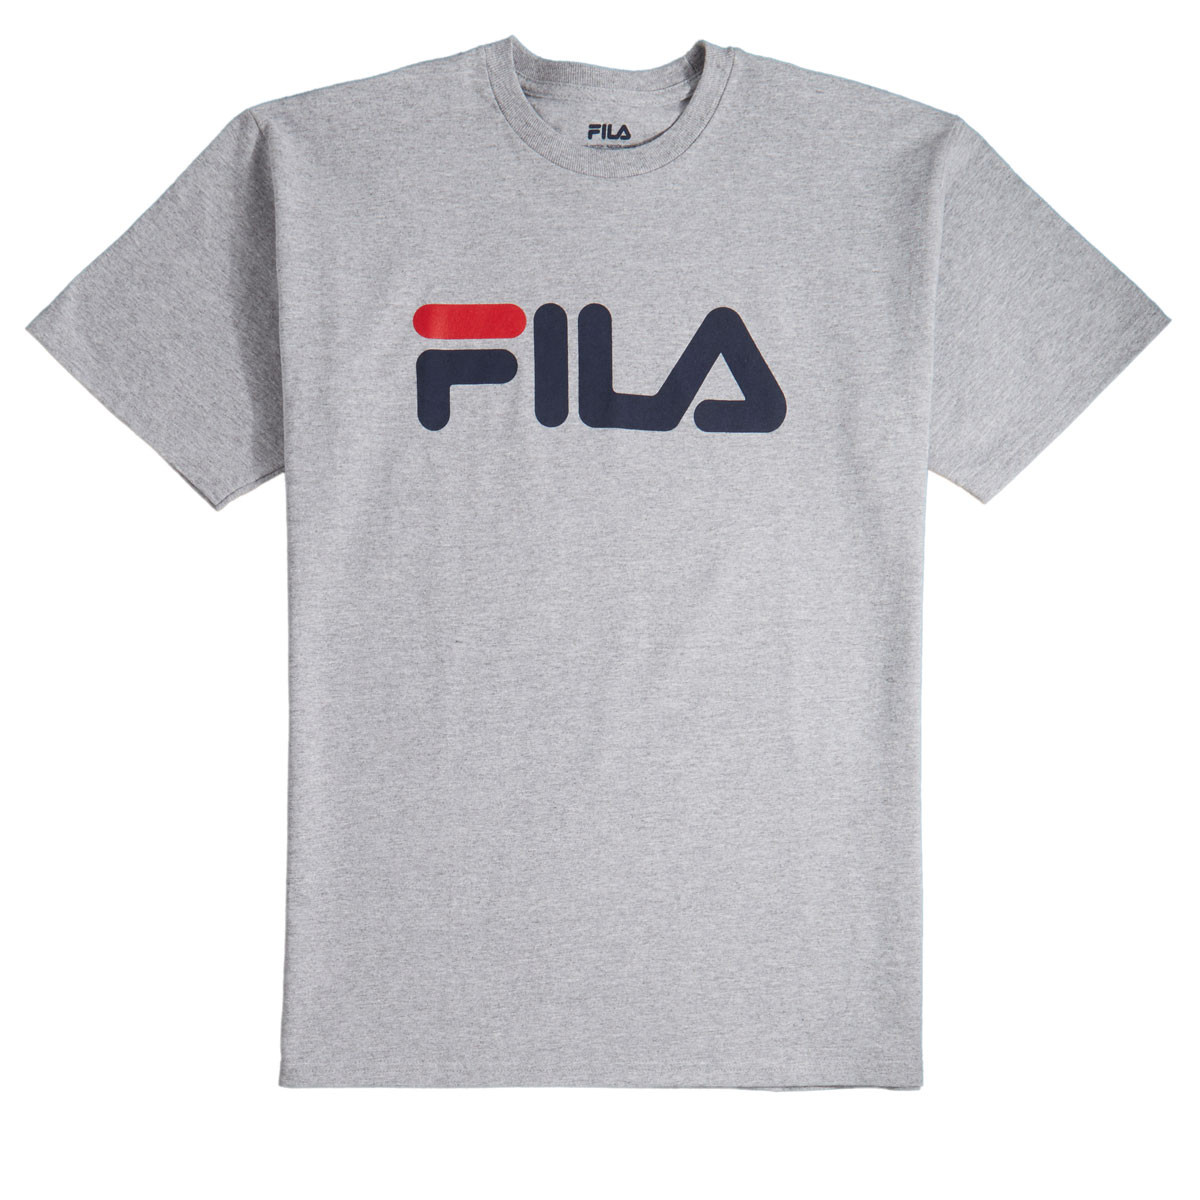 ea8629a184ab FILA Logo T-Shirt - Grey Heather Navy Chinese Red